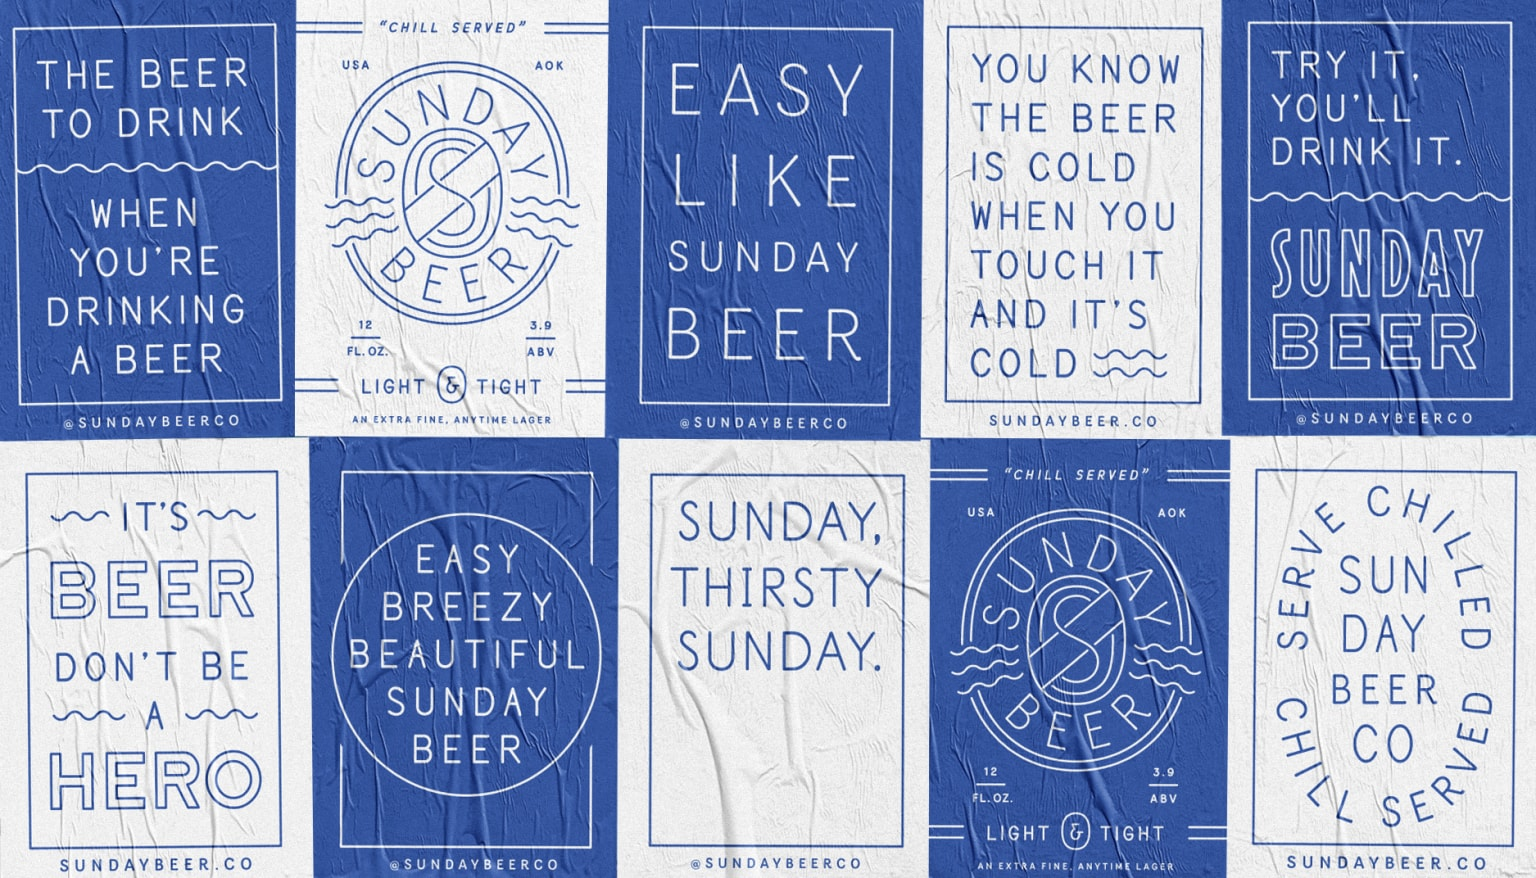 Sunday Beer Co